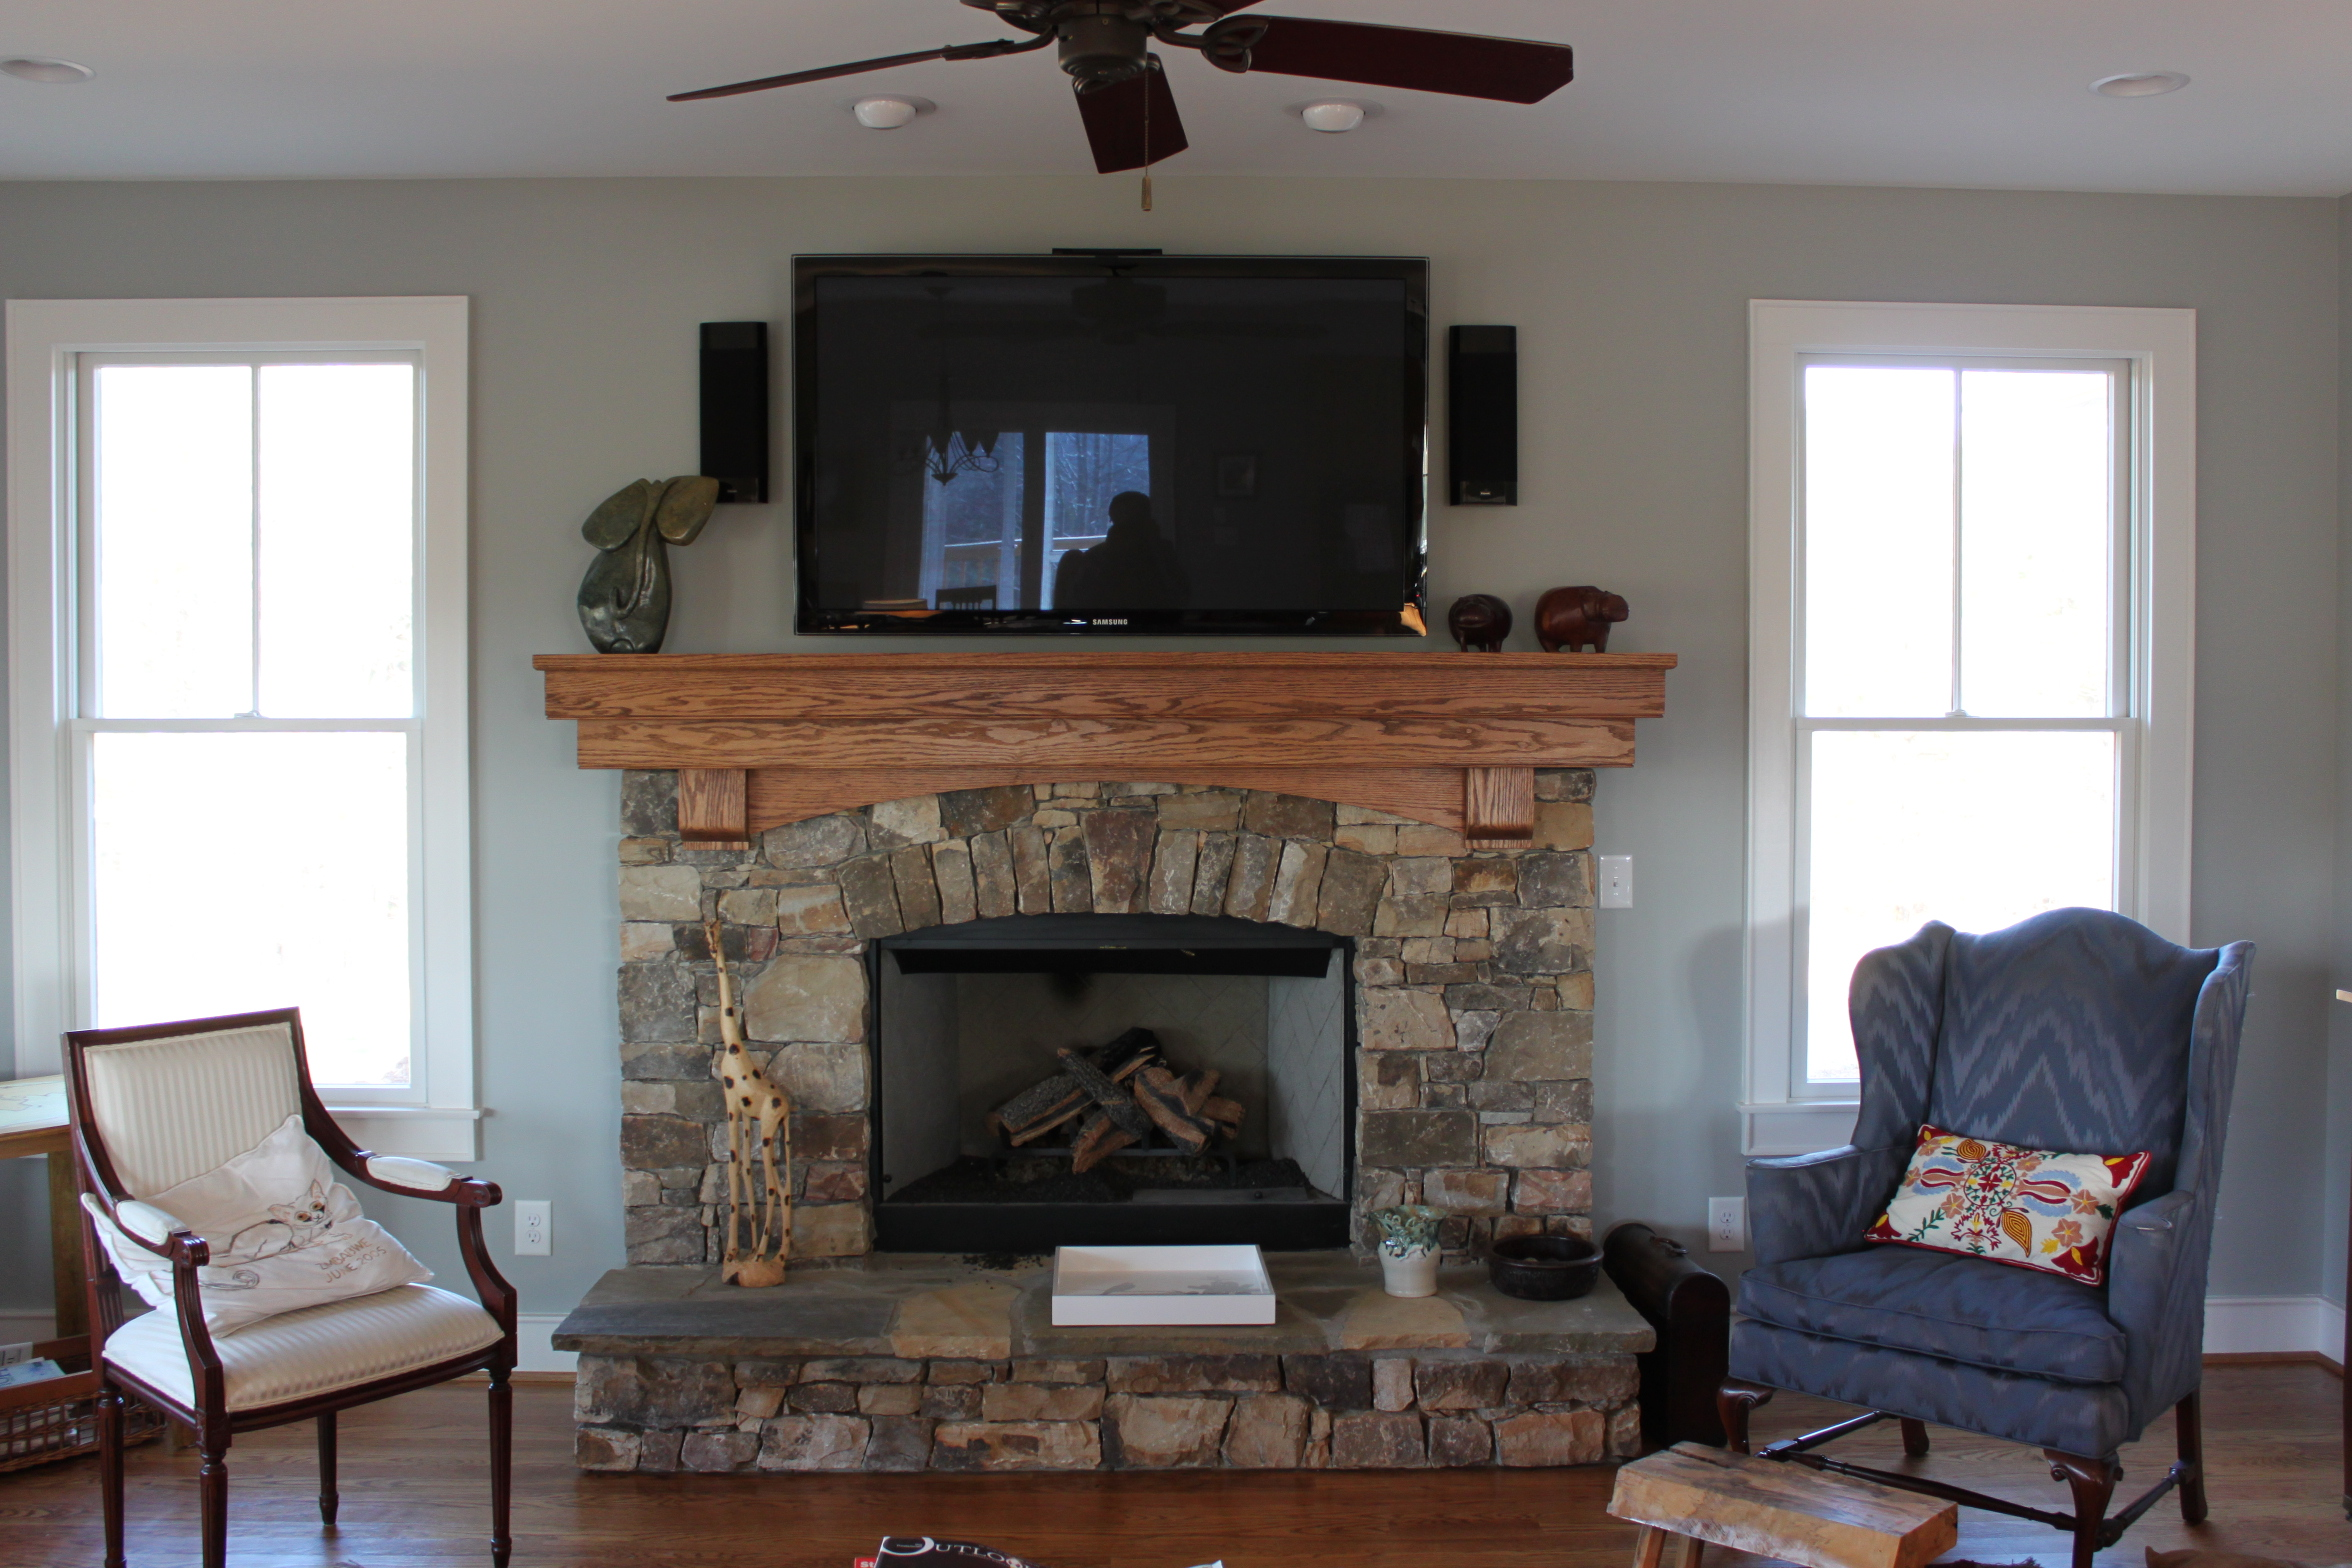 Fifty-five inch TV over fireplace